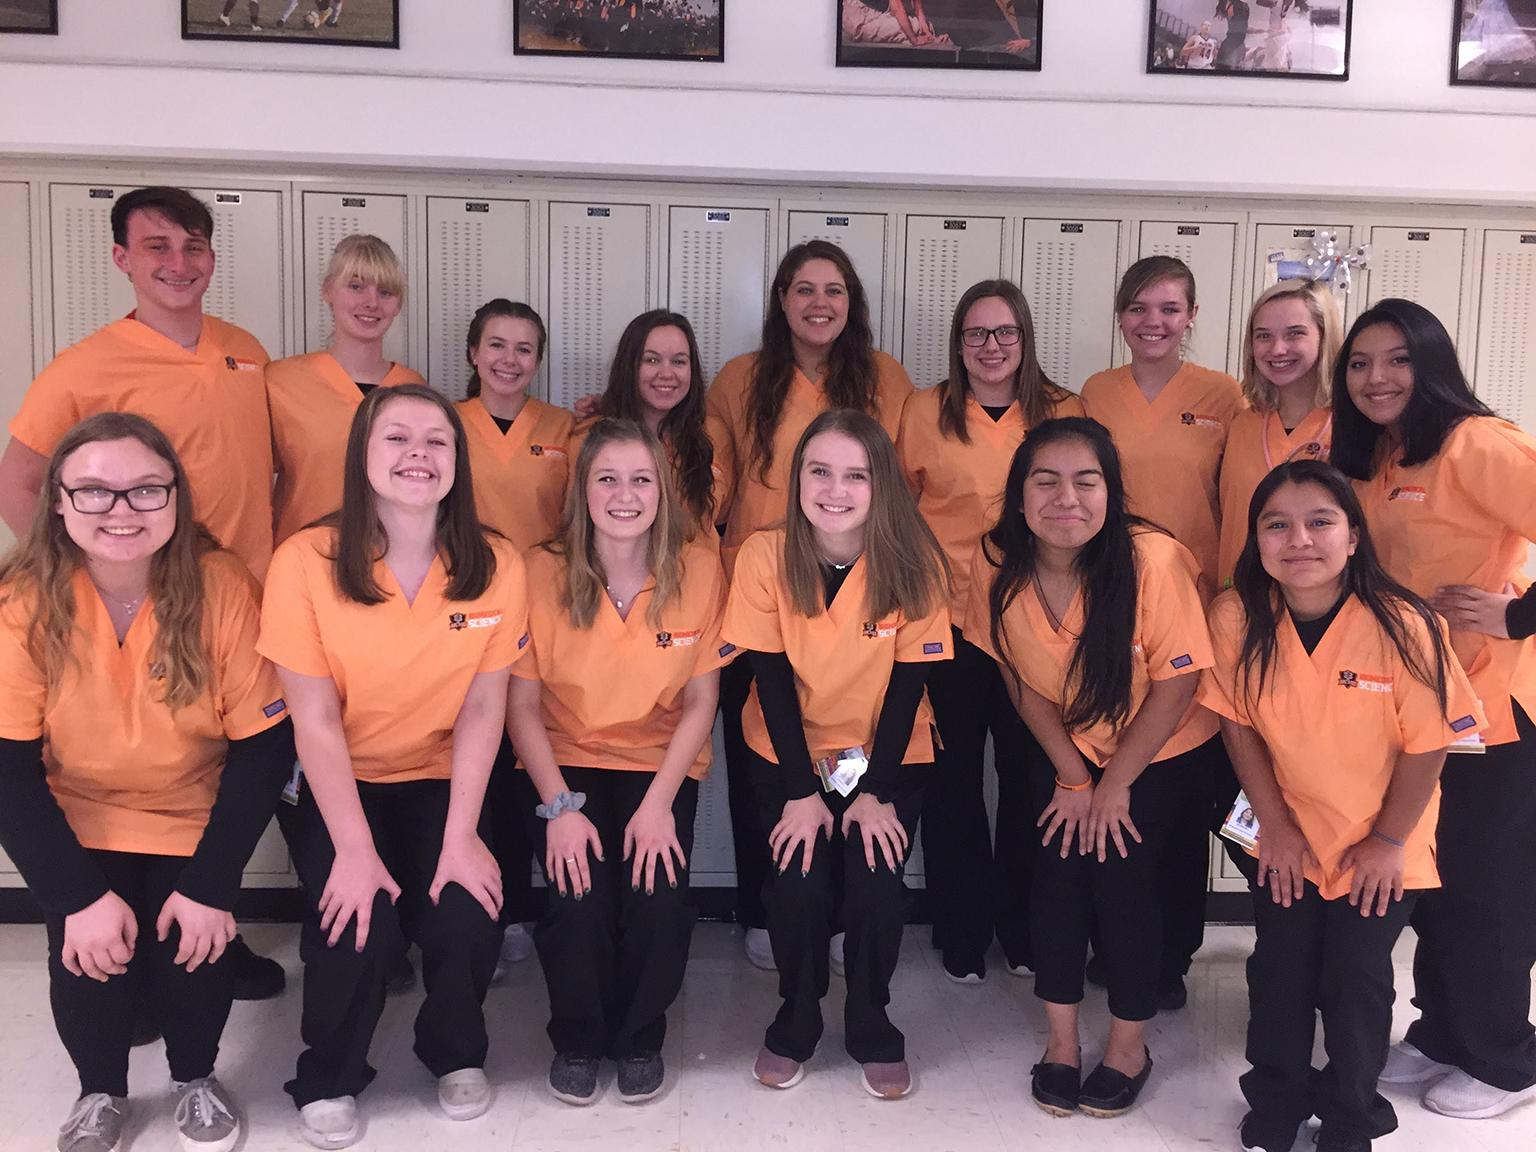 McHenry High School youth residency program participants (Courtesy of Laura Dziubinski / McHenry High School District 156)